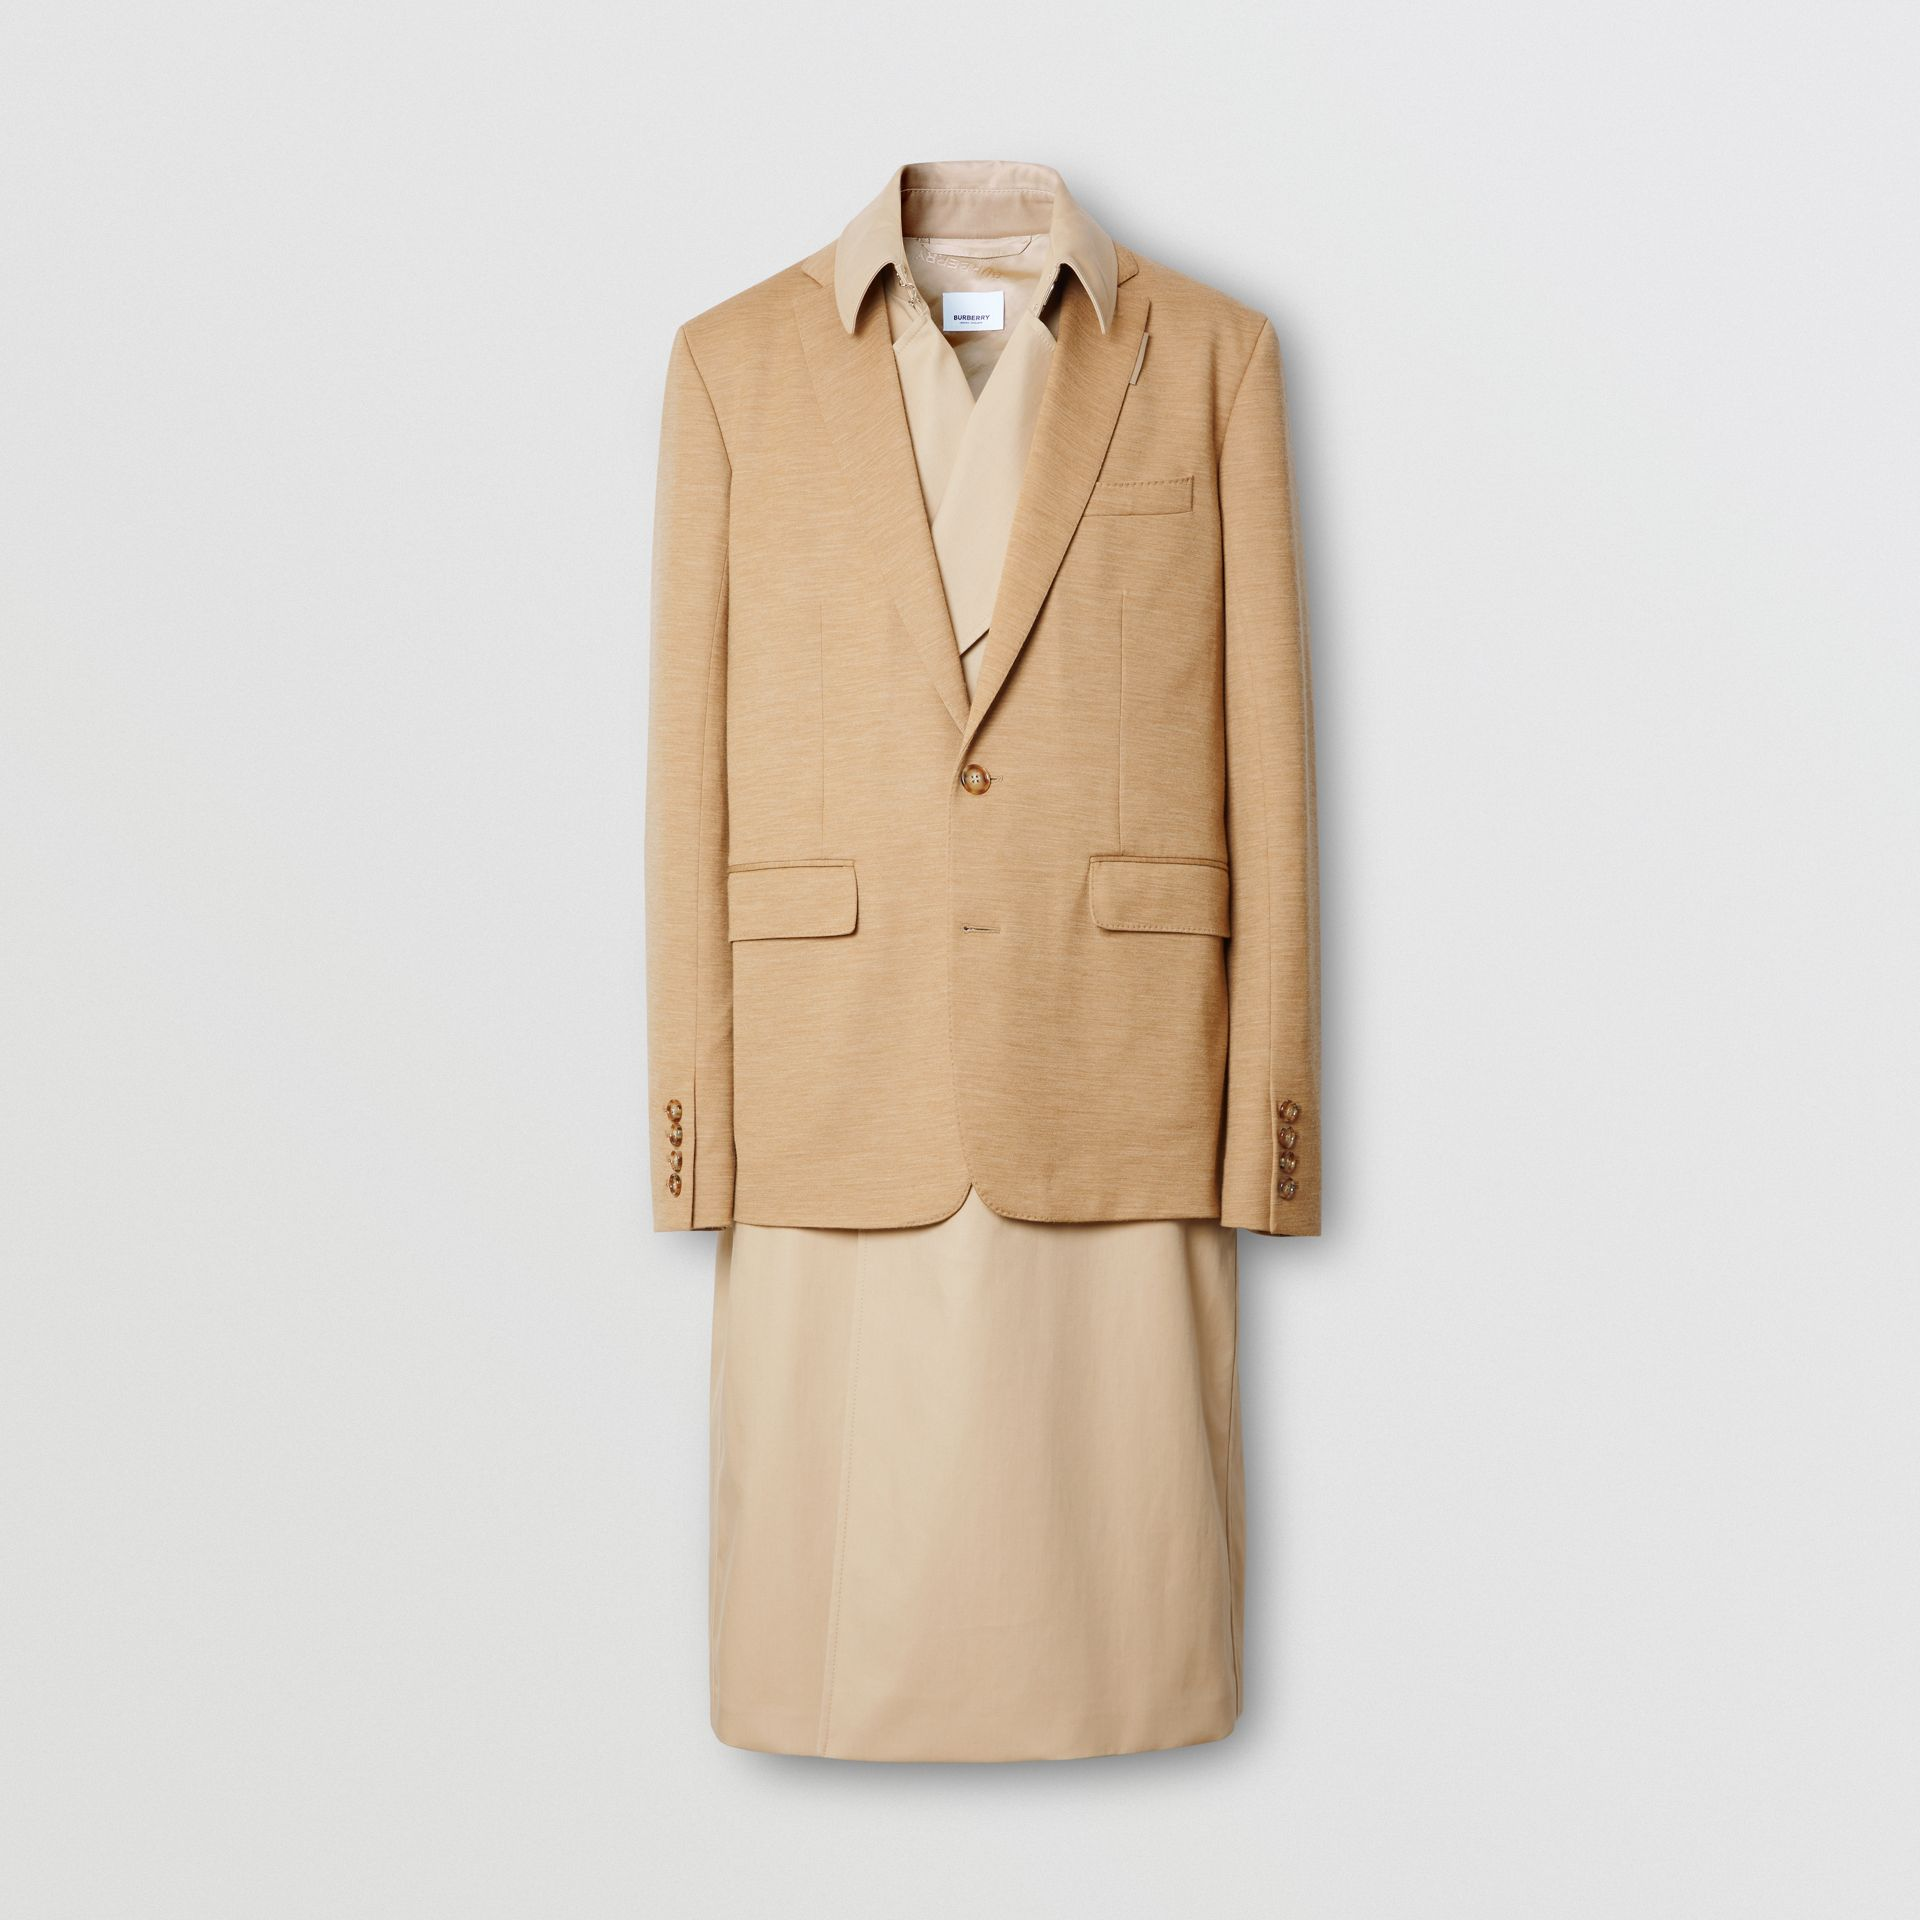 Blazer Detail Cotton Twill Reconstructed Trench Coat in Soft Fawn - Men | Burberry - gallery image 3